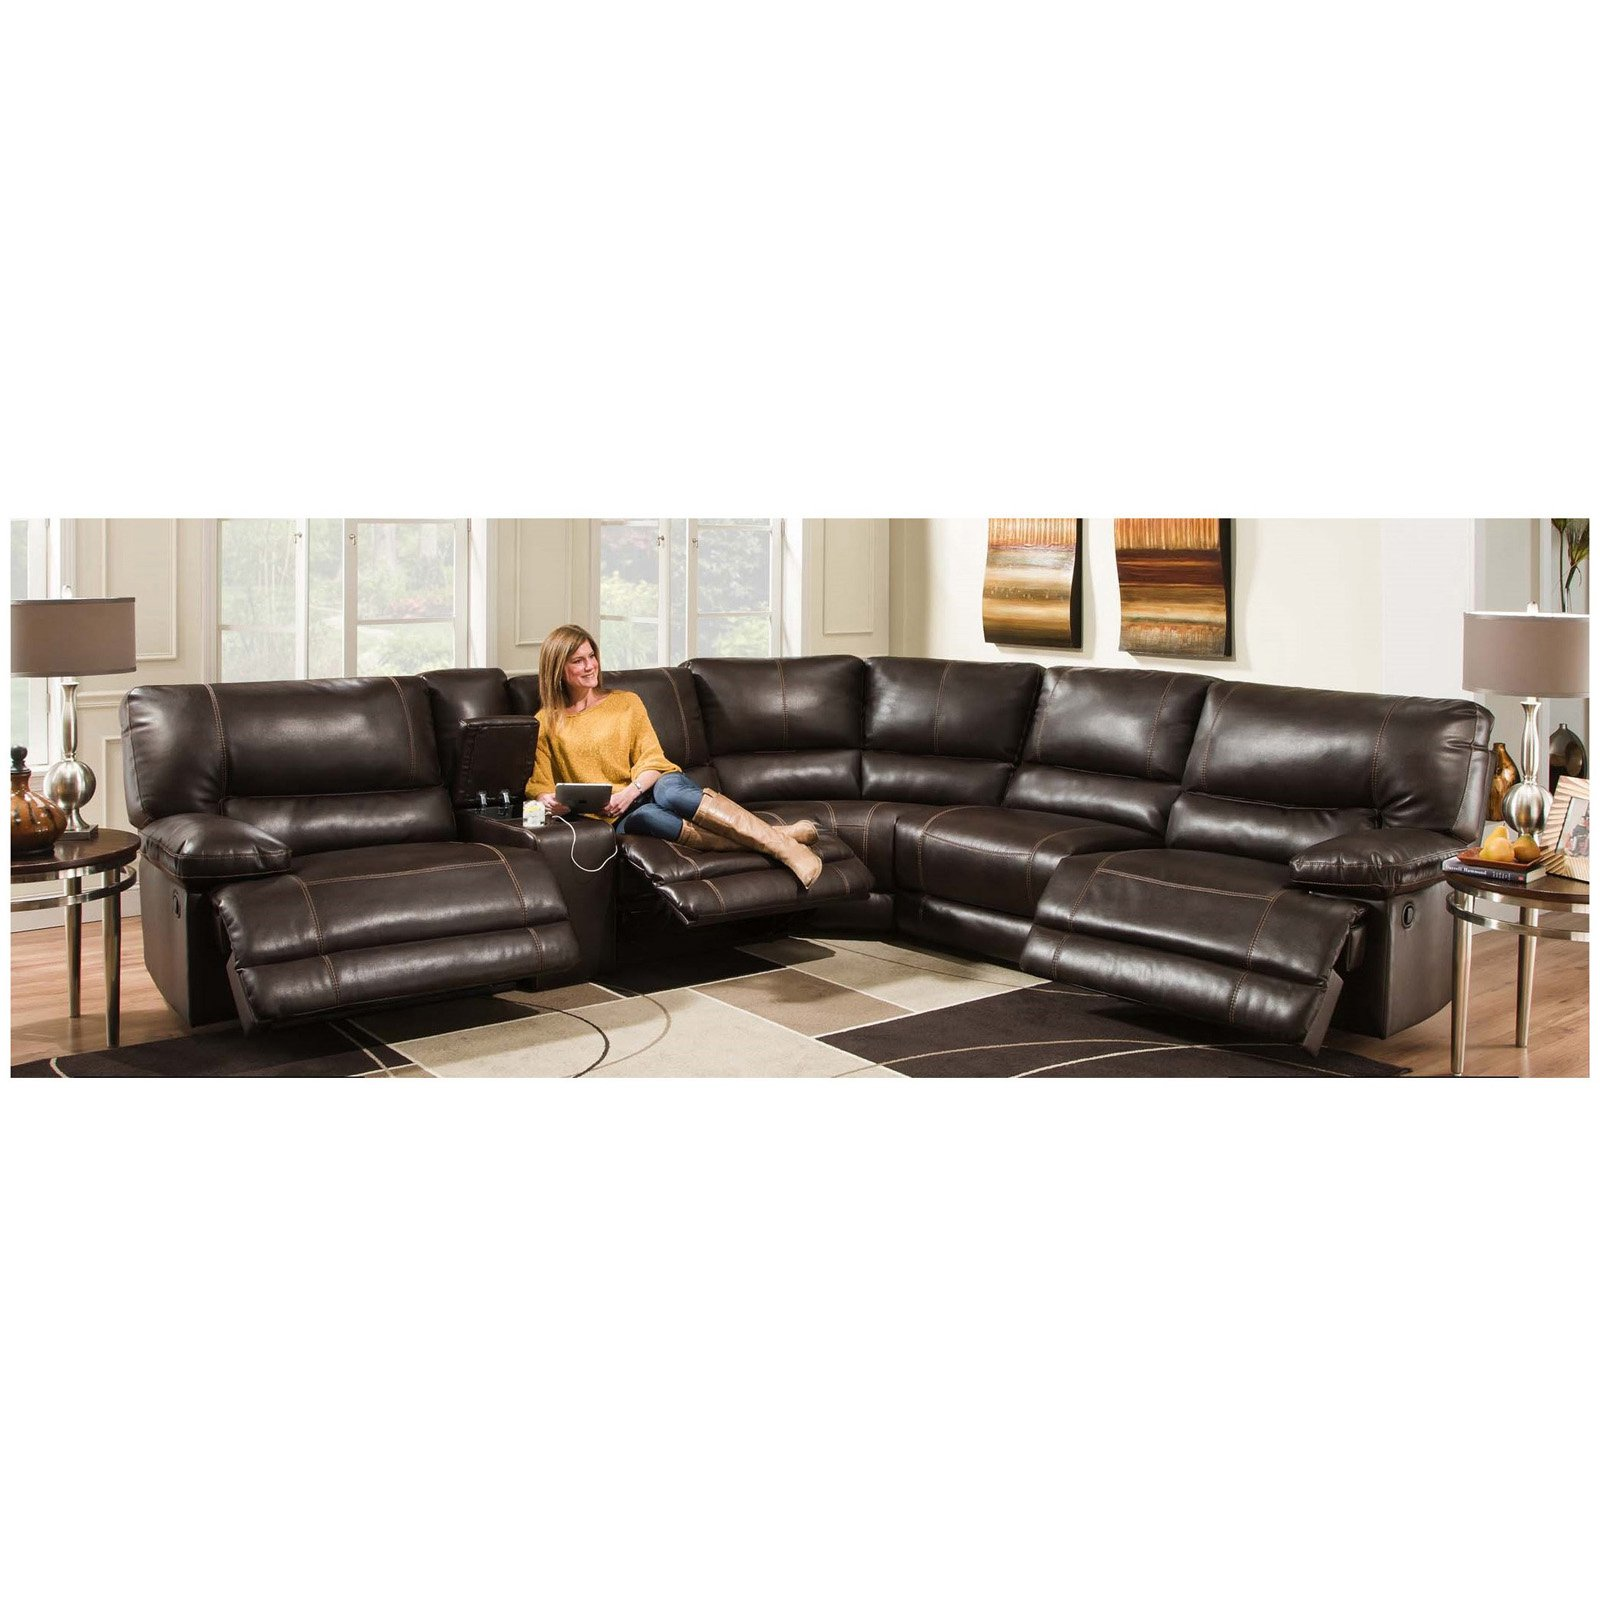 Chelsea Home Furniture Bane 6 Piece Power Sectional Recliner Sofa